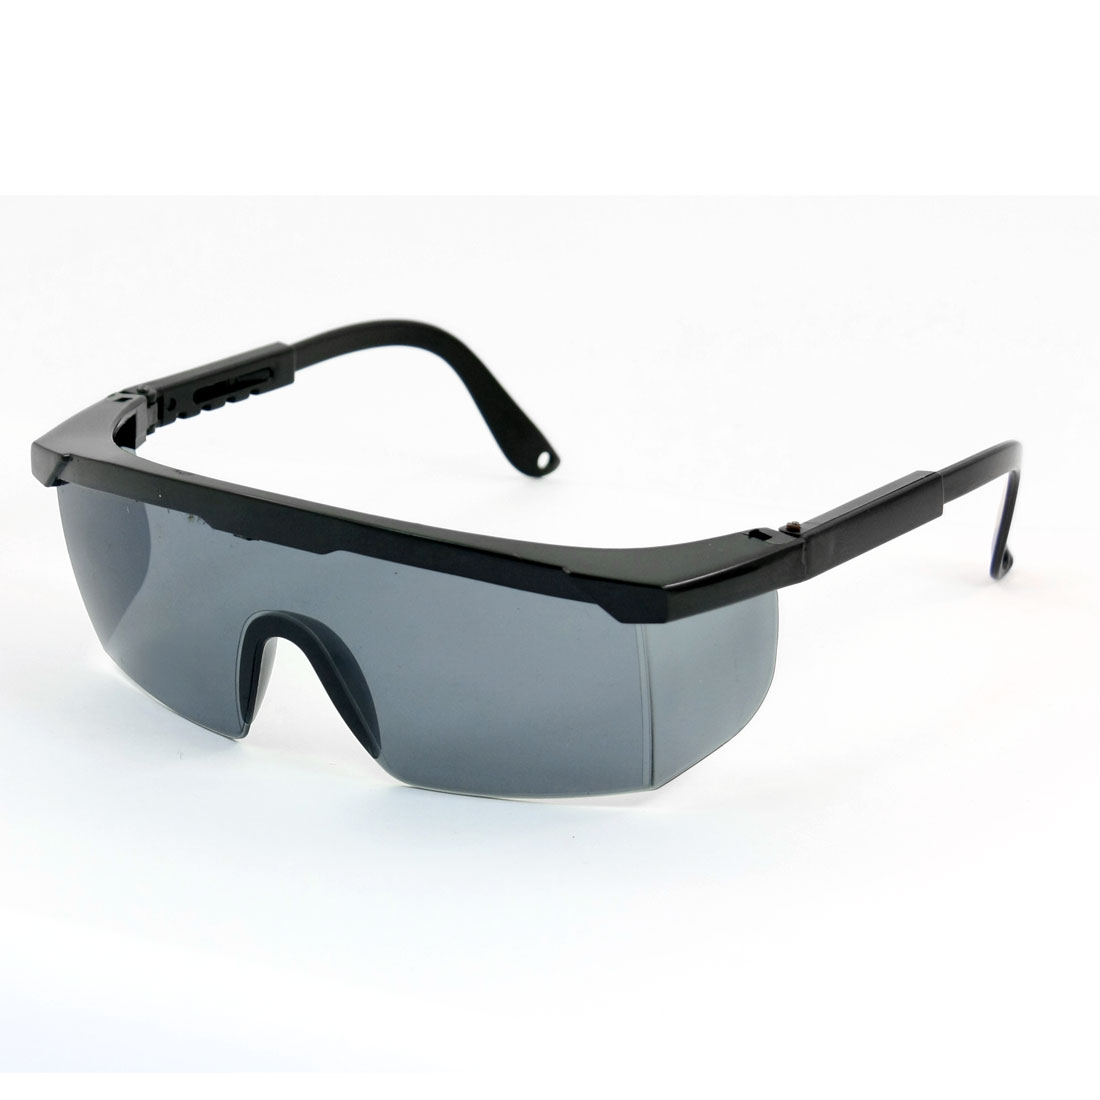 Black Plastic Adjustable Arms Half Frame Gray Uni-Lens Wrap Around Protective Safety Welding Glasses